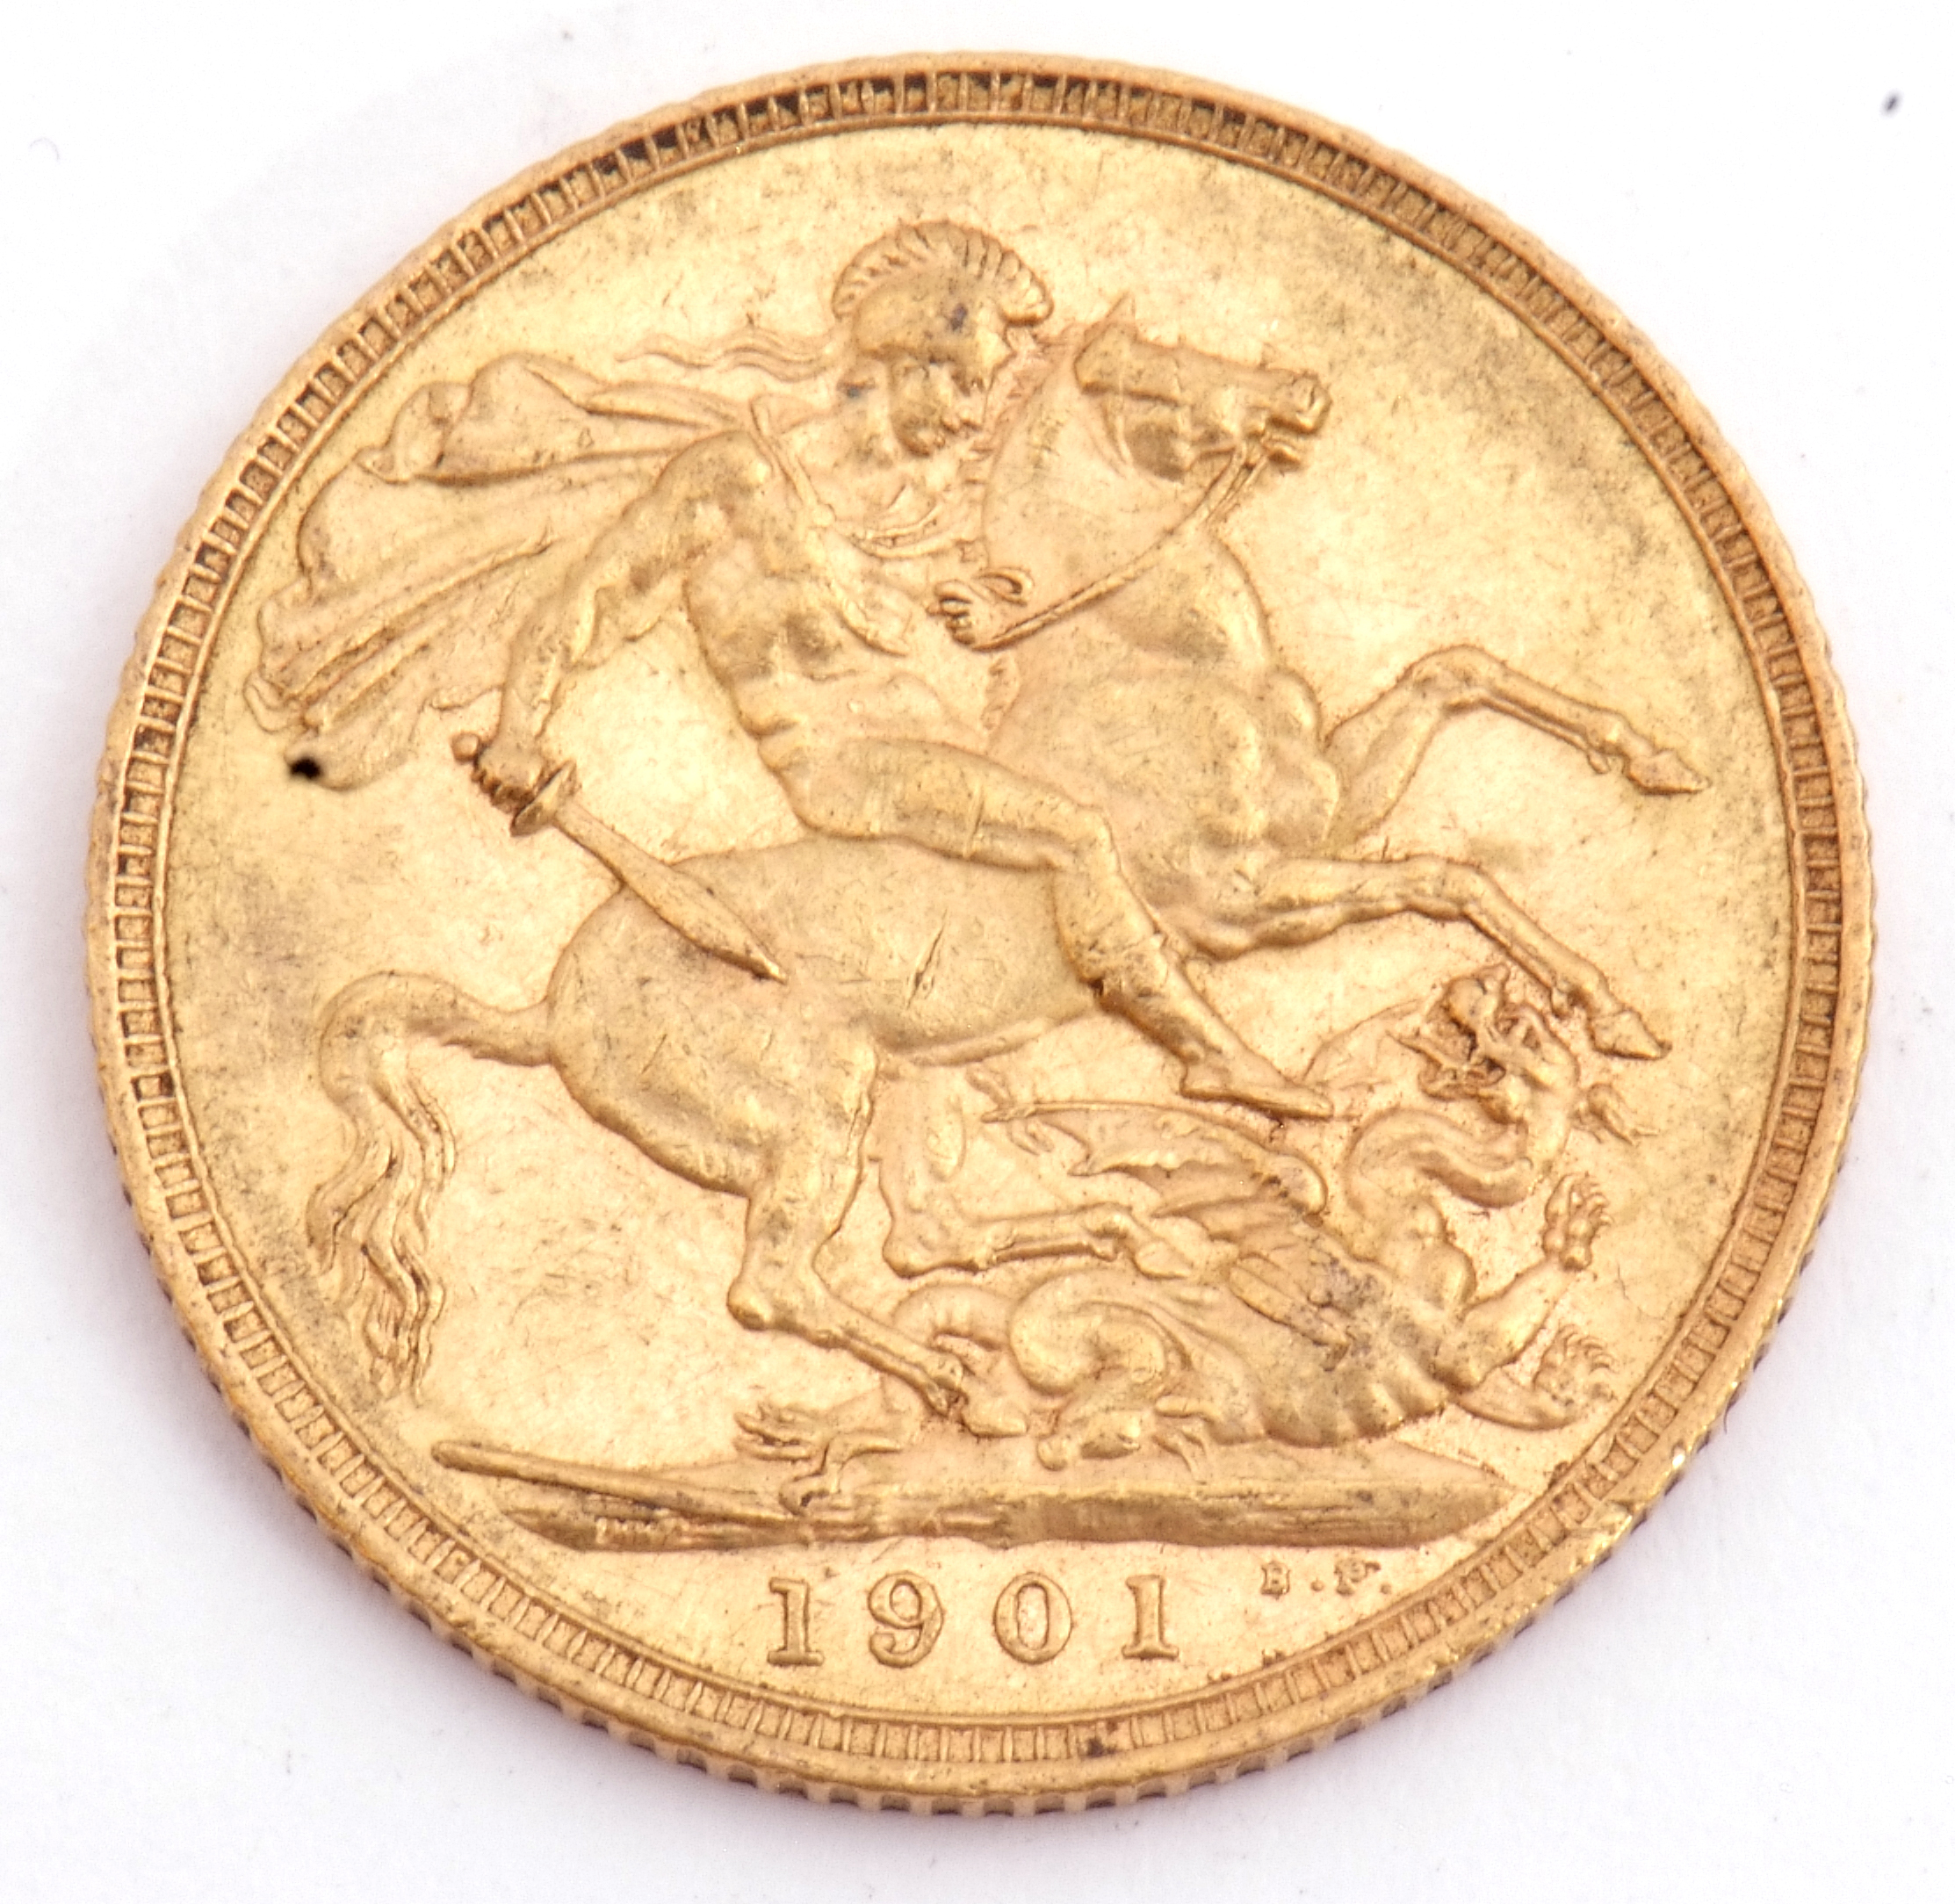 Victoria gold sovereign dated 1901 - Image 2 of 3